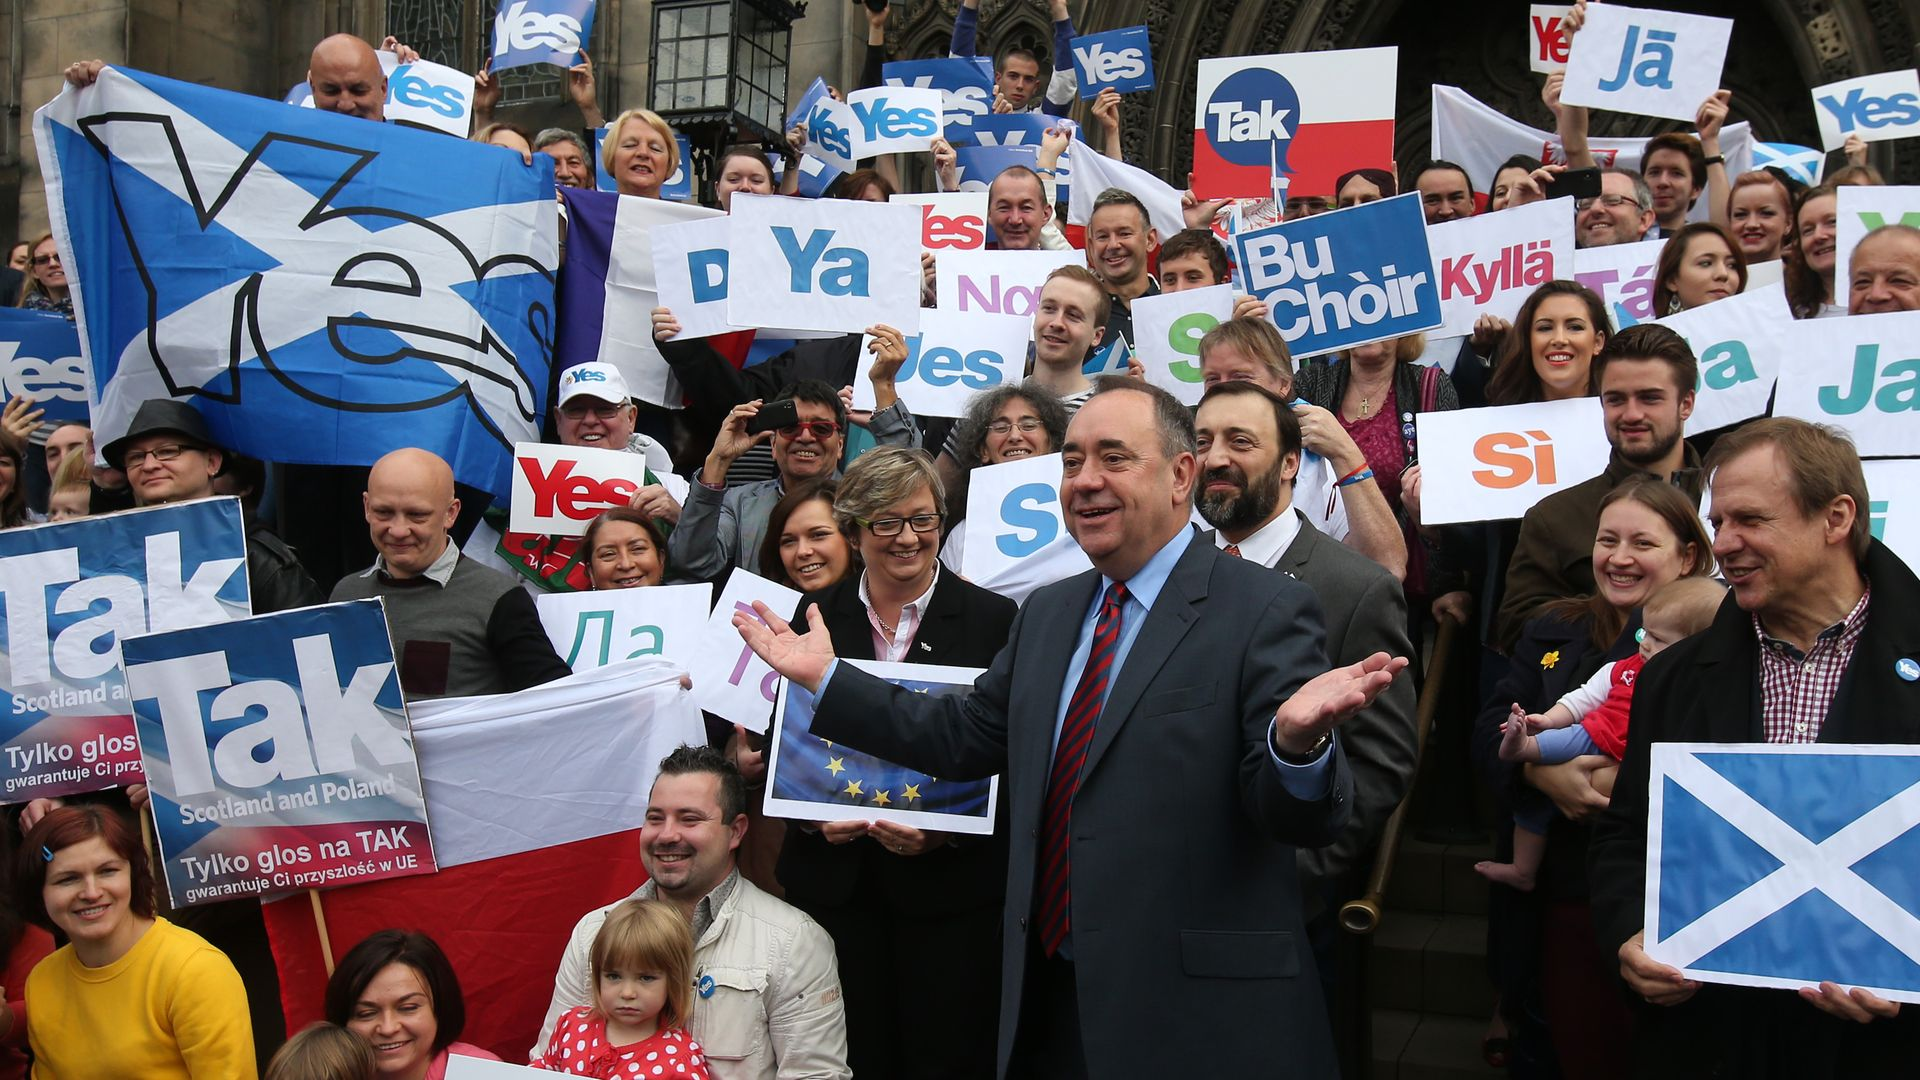 Alex Salmond meets with Scots and other European citizens to discuss Scotland's continued EU membership with a Yes vote - Credit: PA